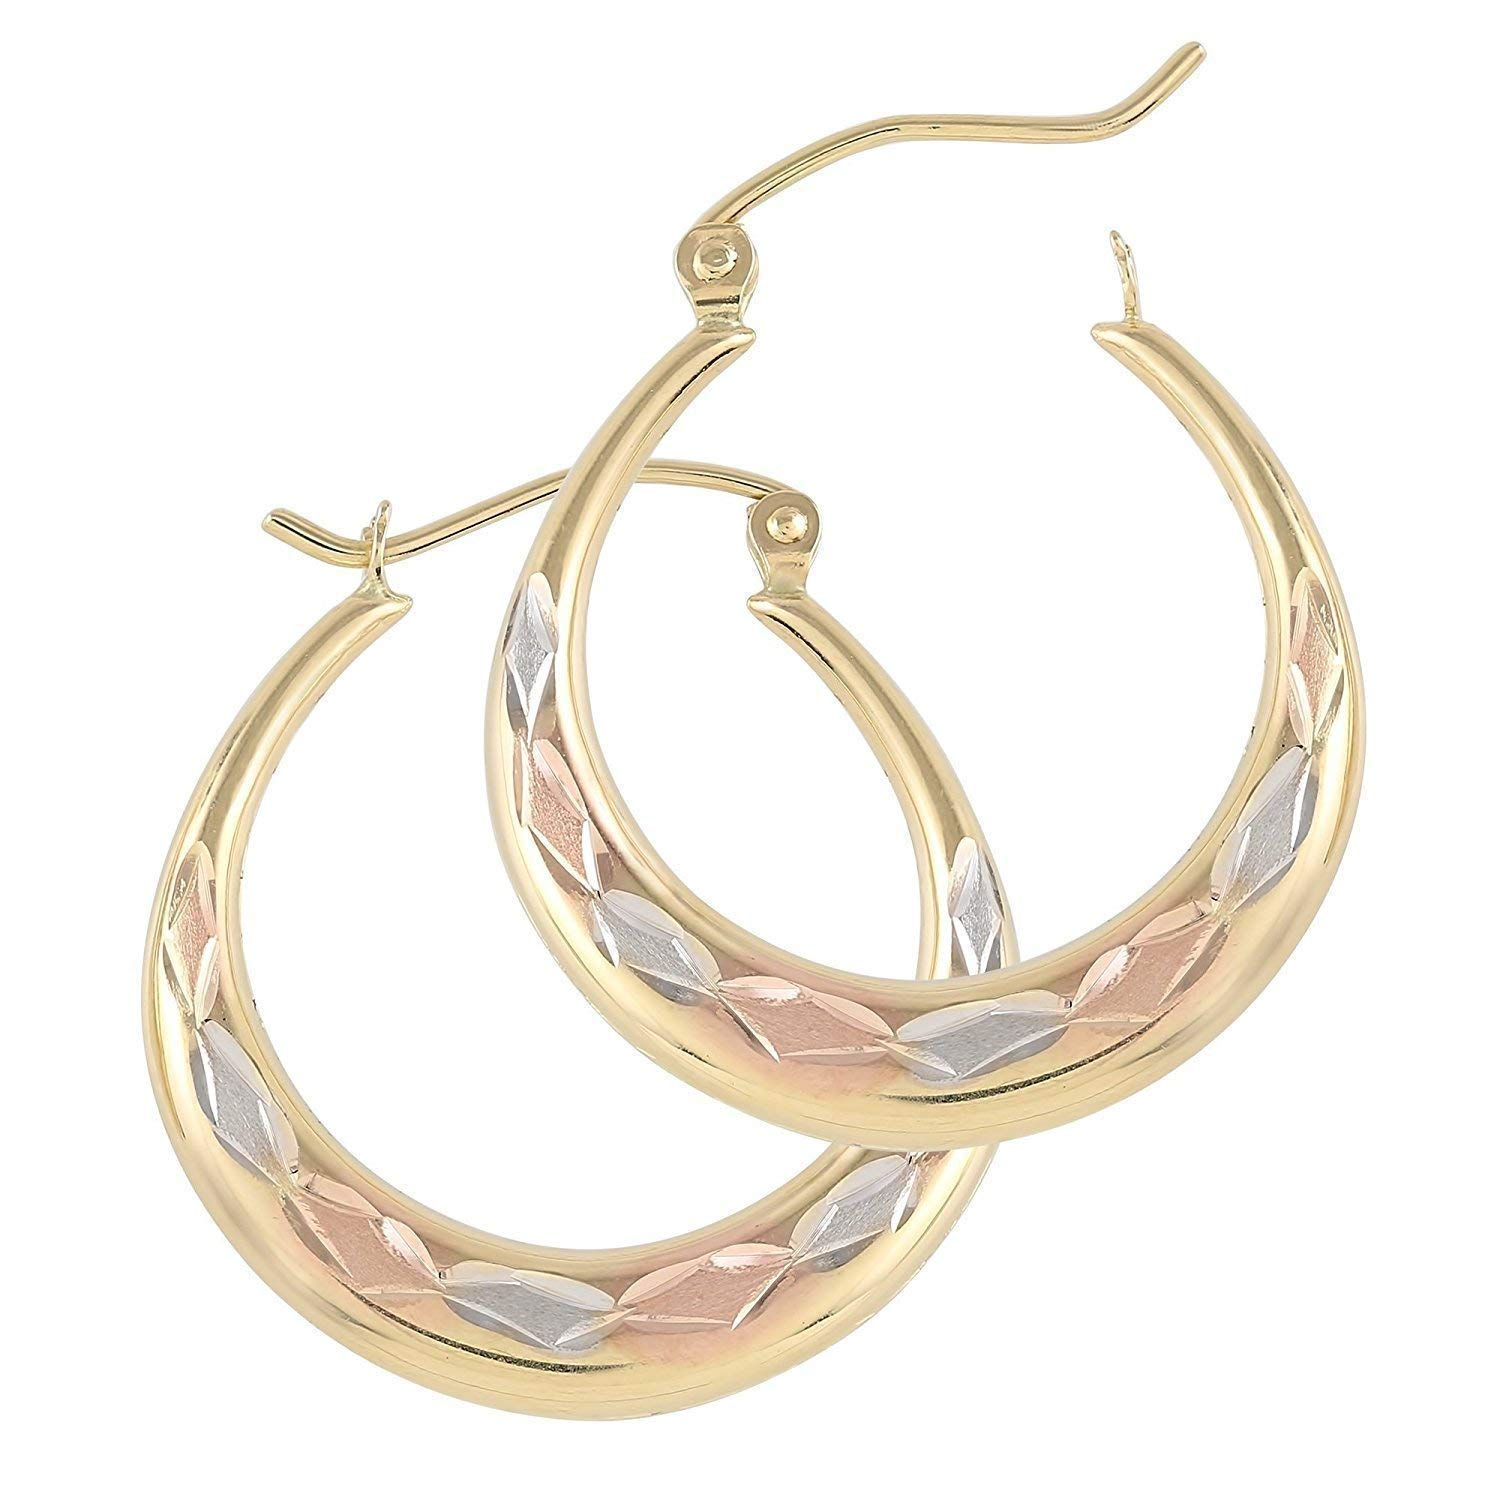 TousiAttar Tri Color Hoop Earrings - 14k Gold Earring for Women - Oval Shaped Unique Jewelry for Everyday (25 mm Diameter) 1inch